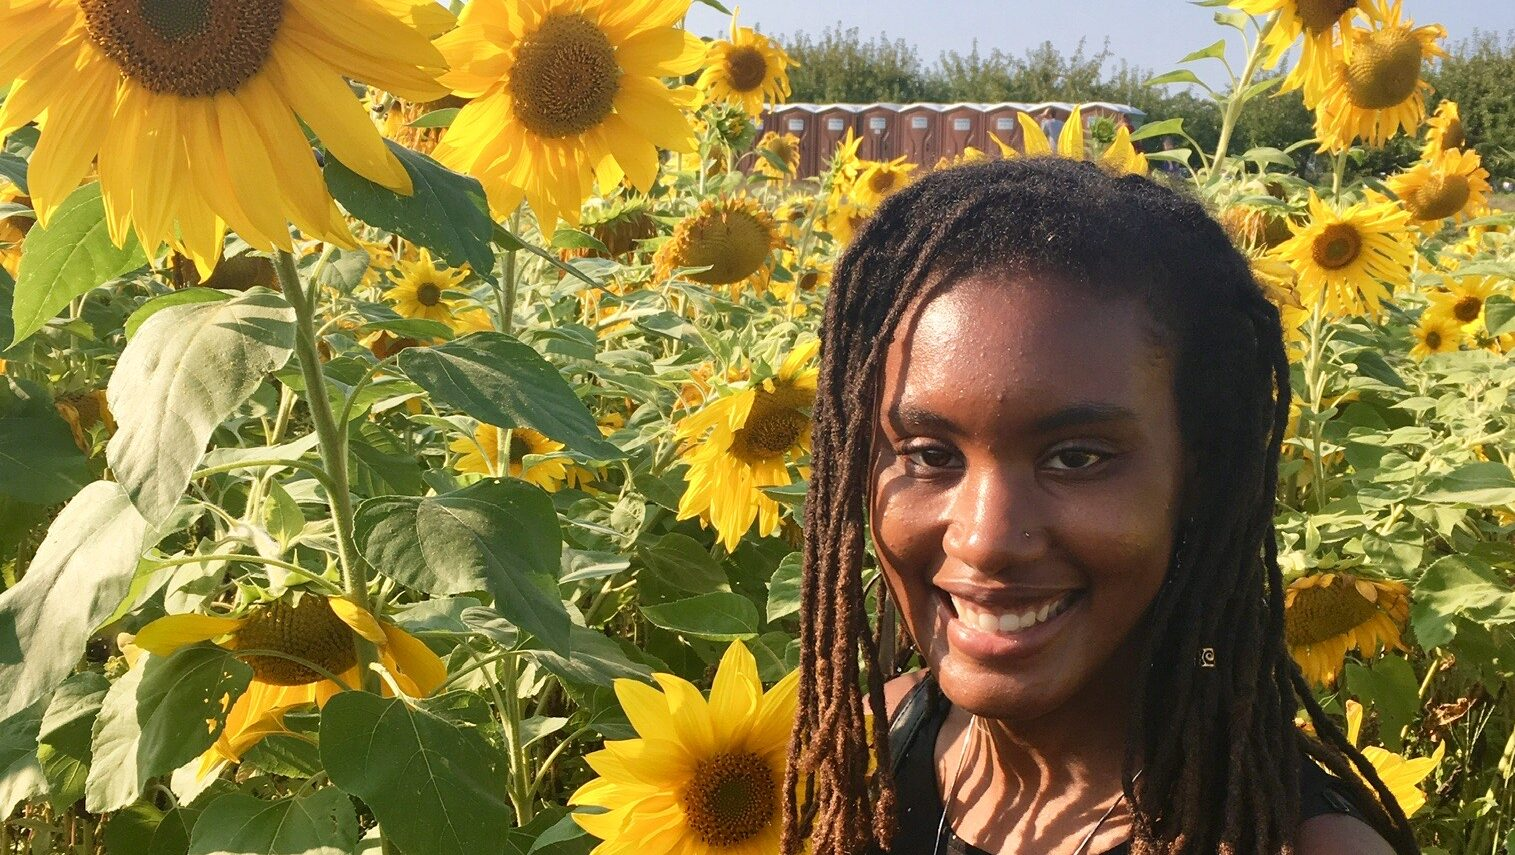 Black woman with dreadlocks standing in a field of sunflowers